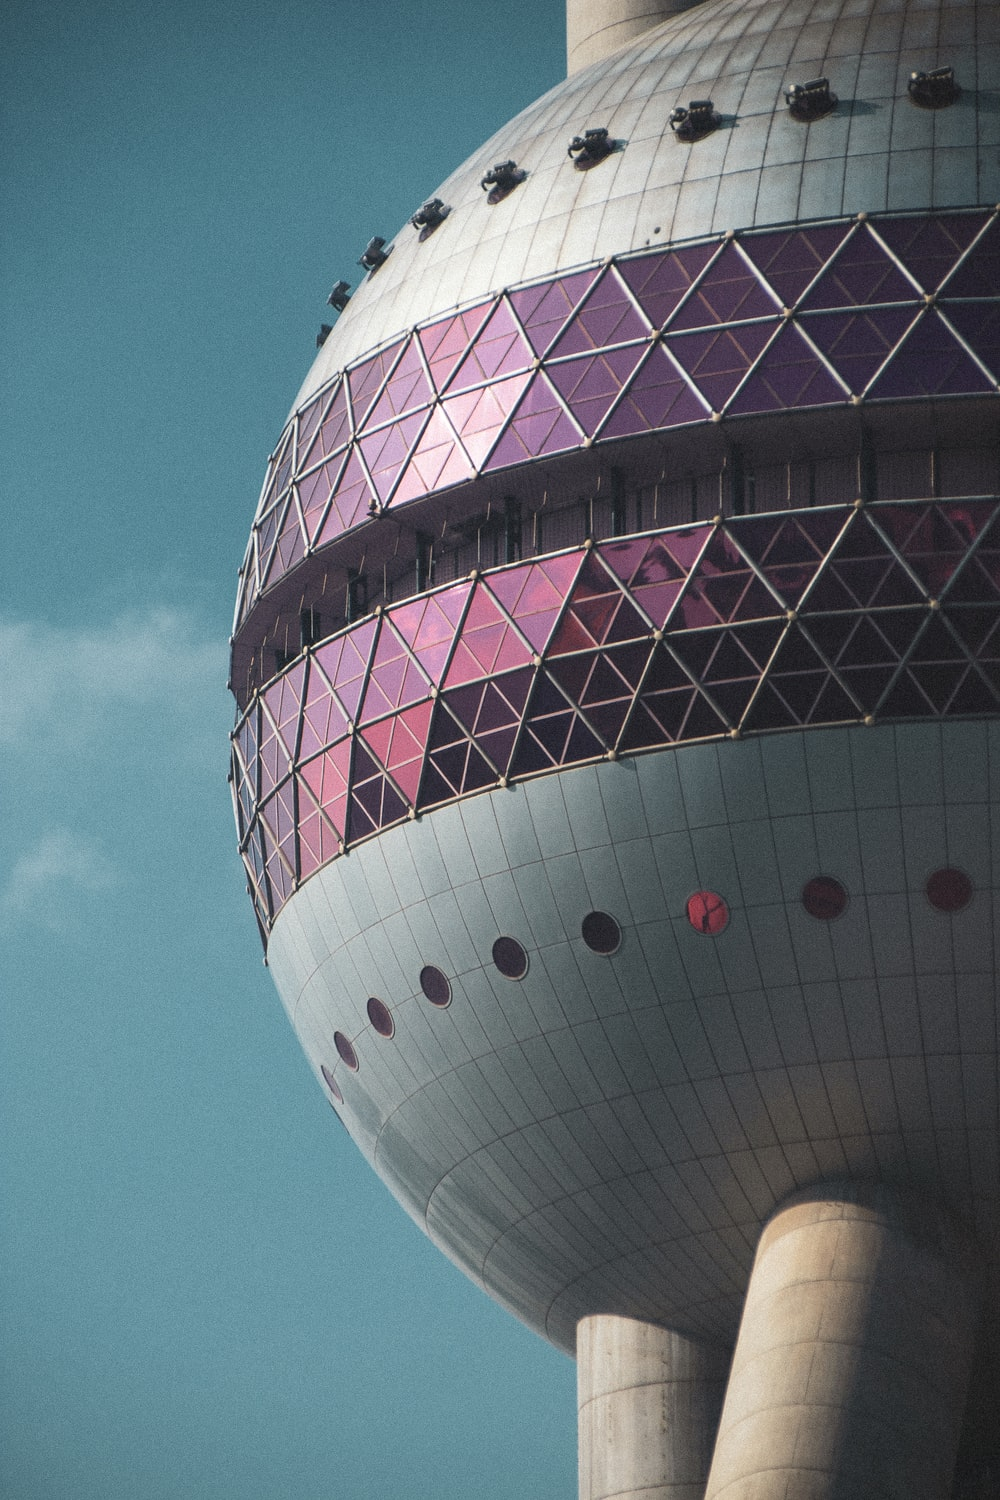 white and purple round building under blue sky during daytime